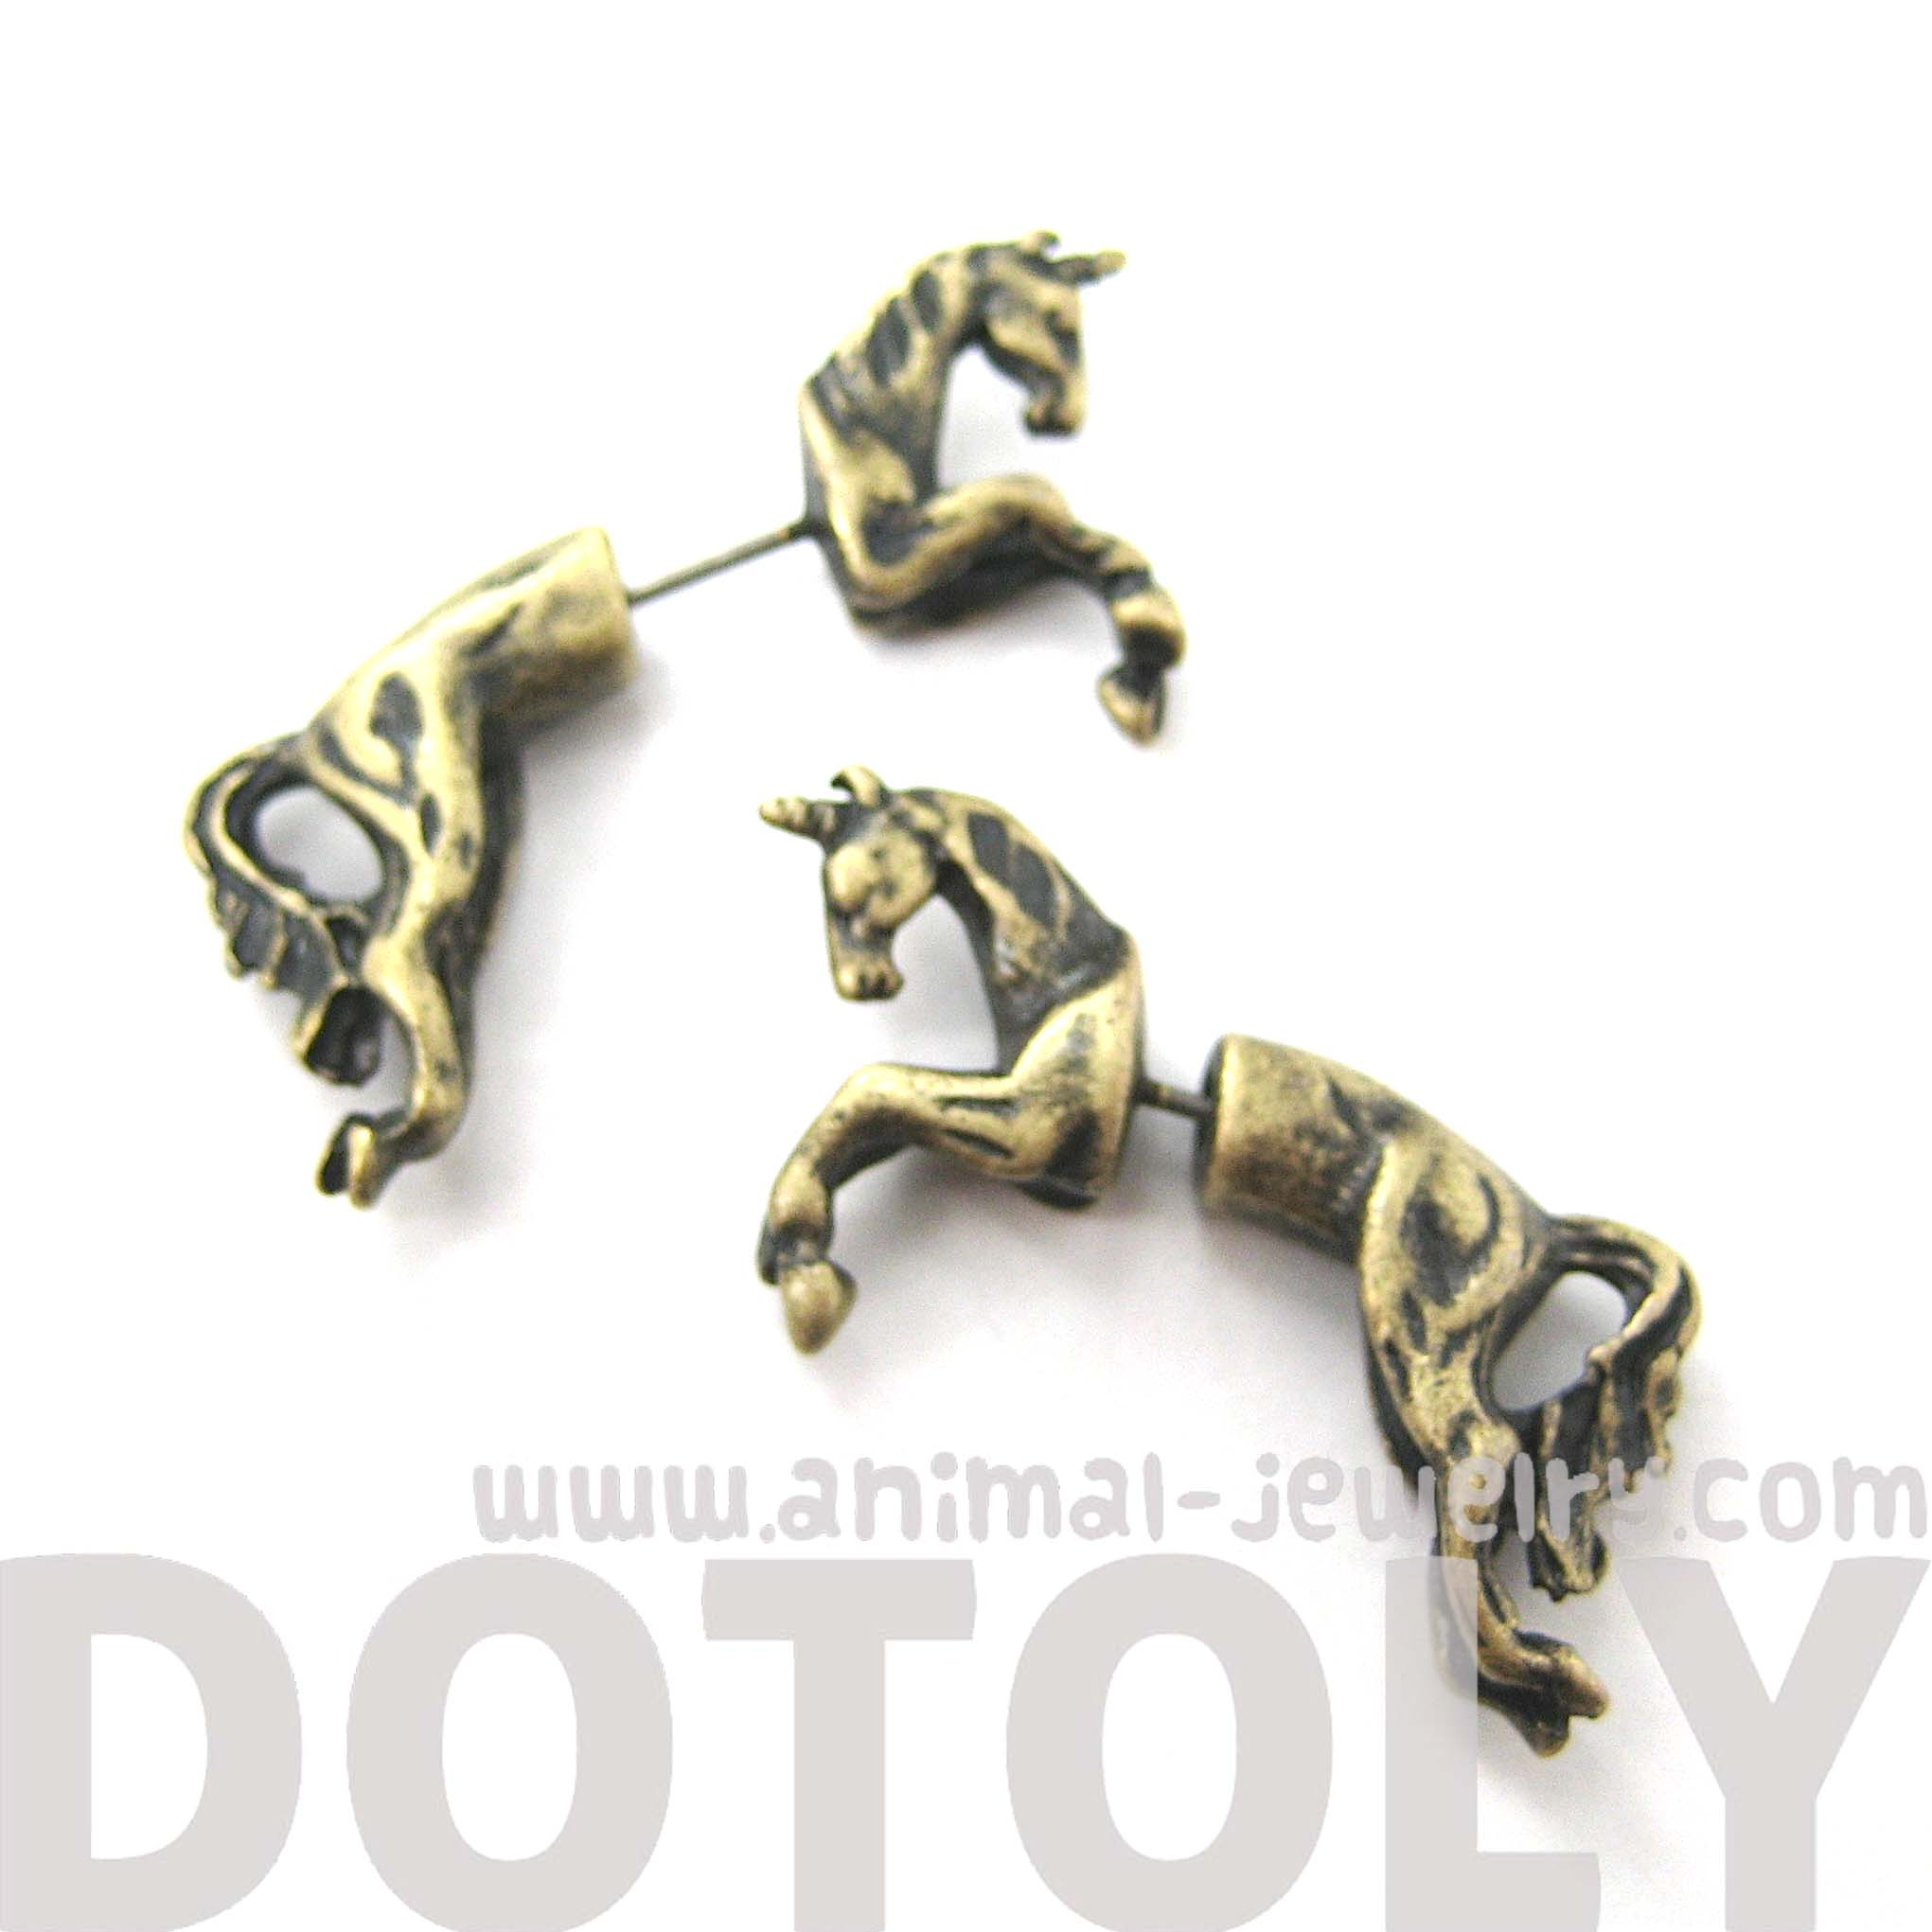 fake-gauge-earrings-mythical-unicorn-horse-animal-faux-plug-stud-earrings-in-brass